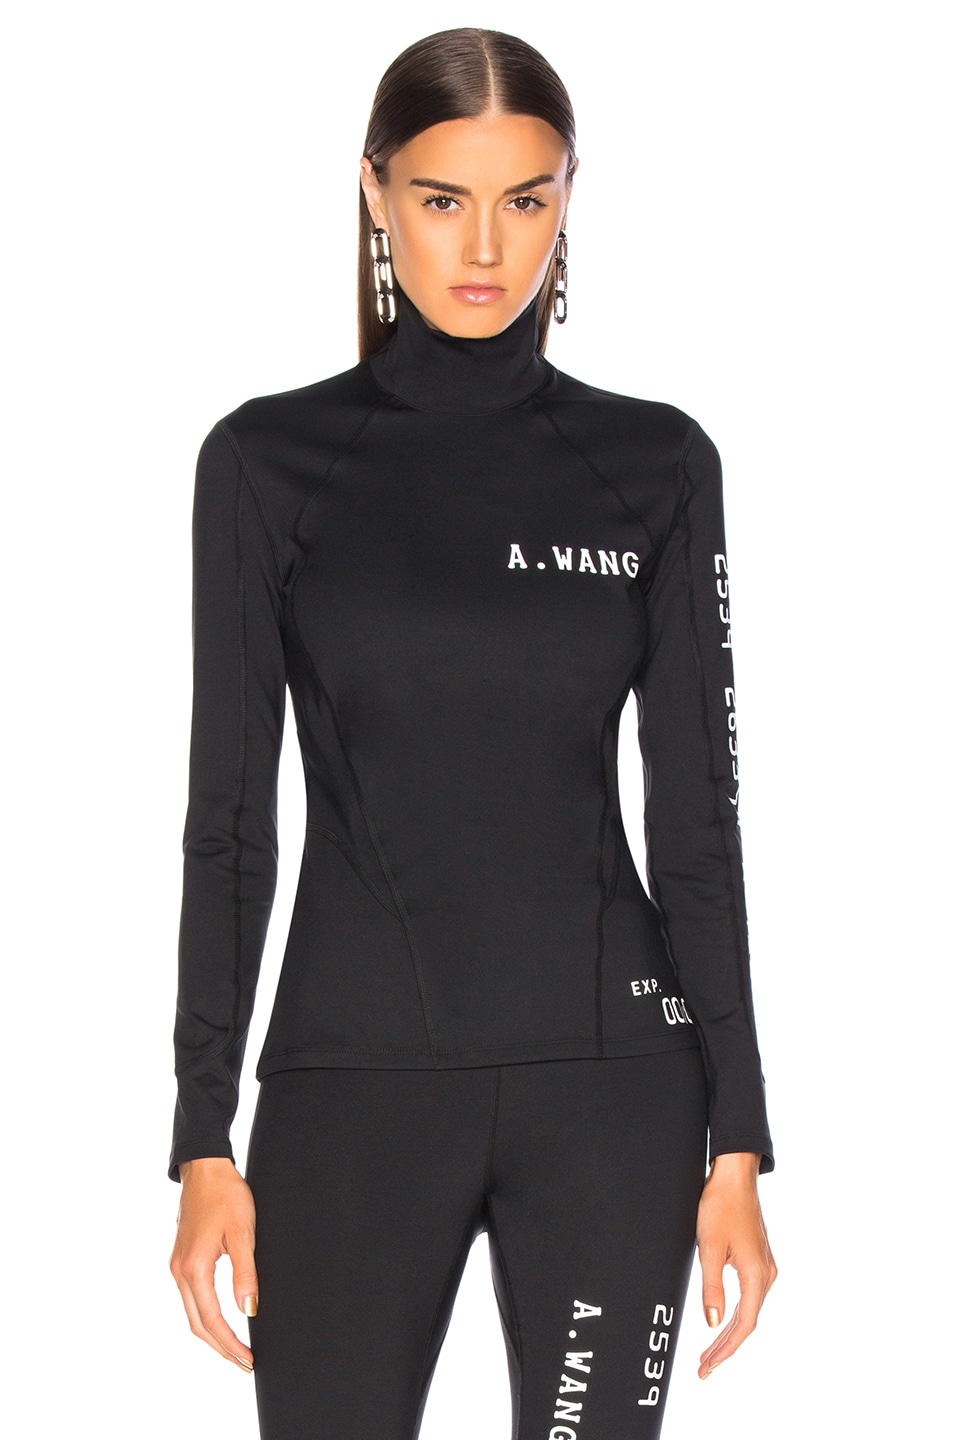 Image 2 of Alexander Wang Long Sleeve Scuba Rash Guard Top in Black